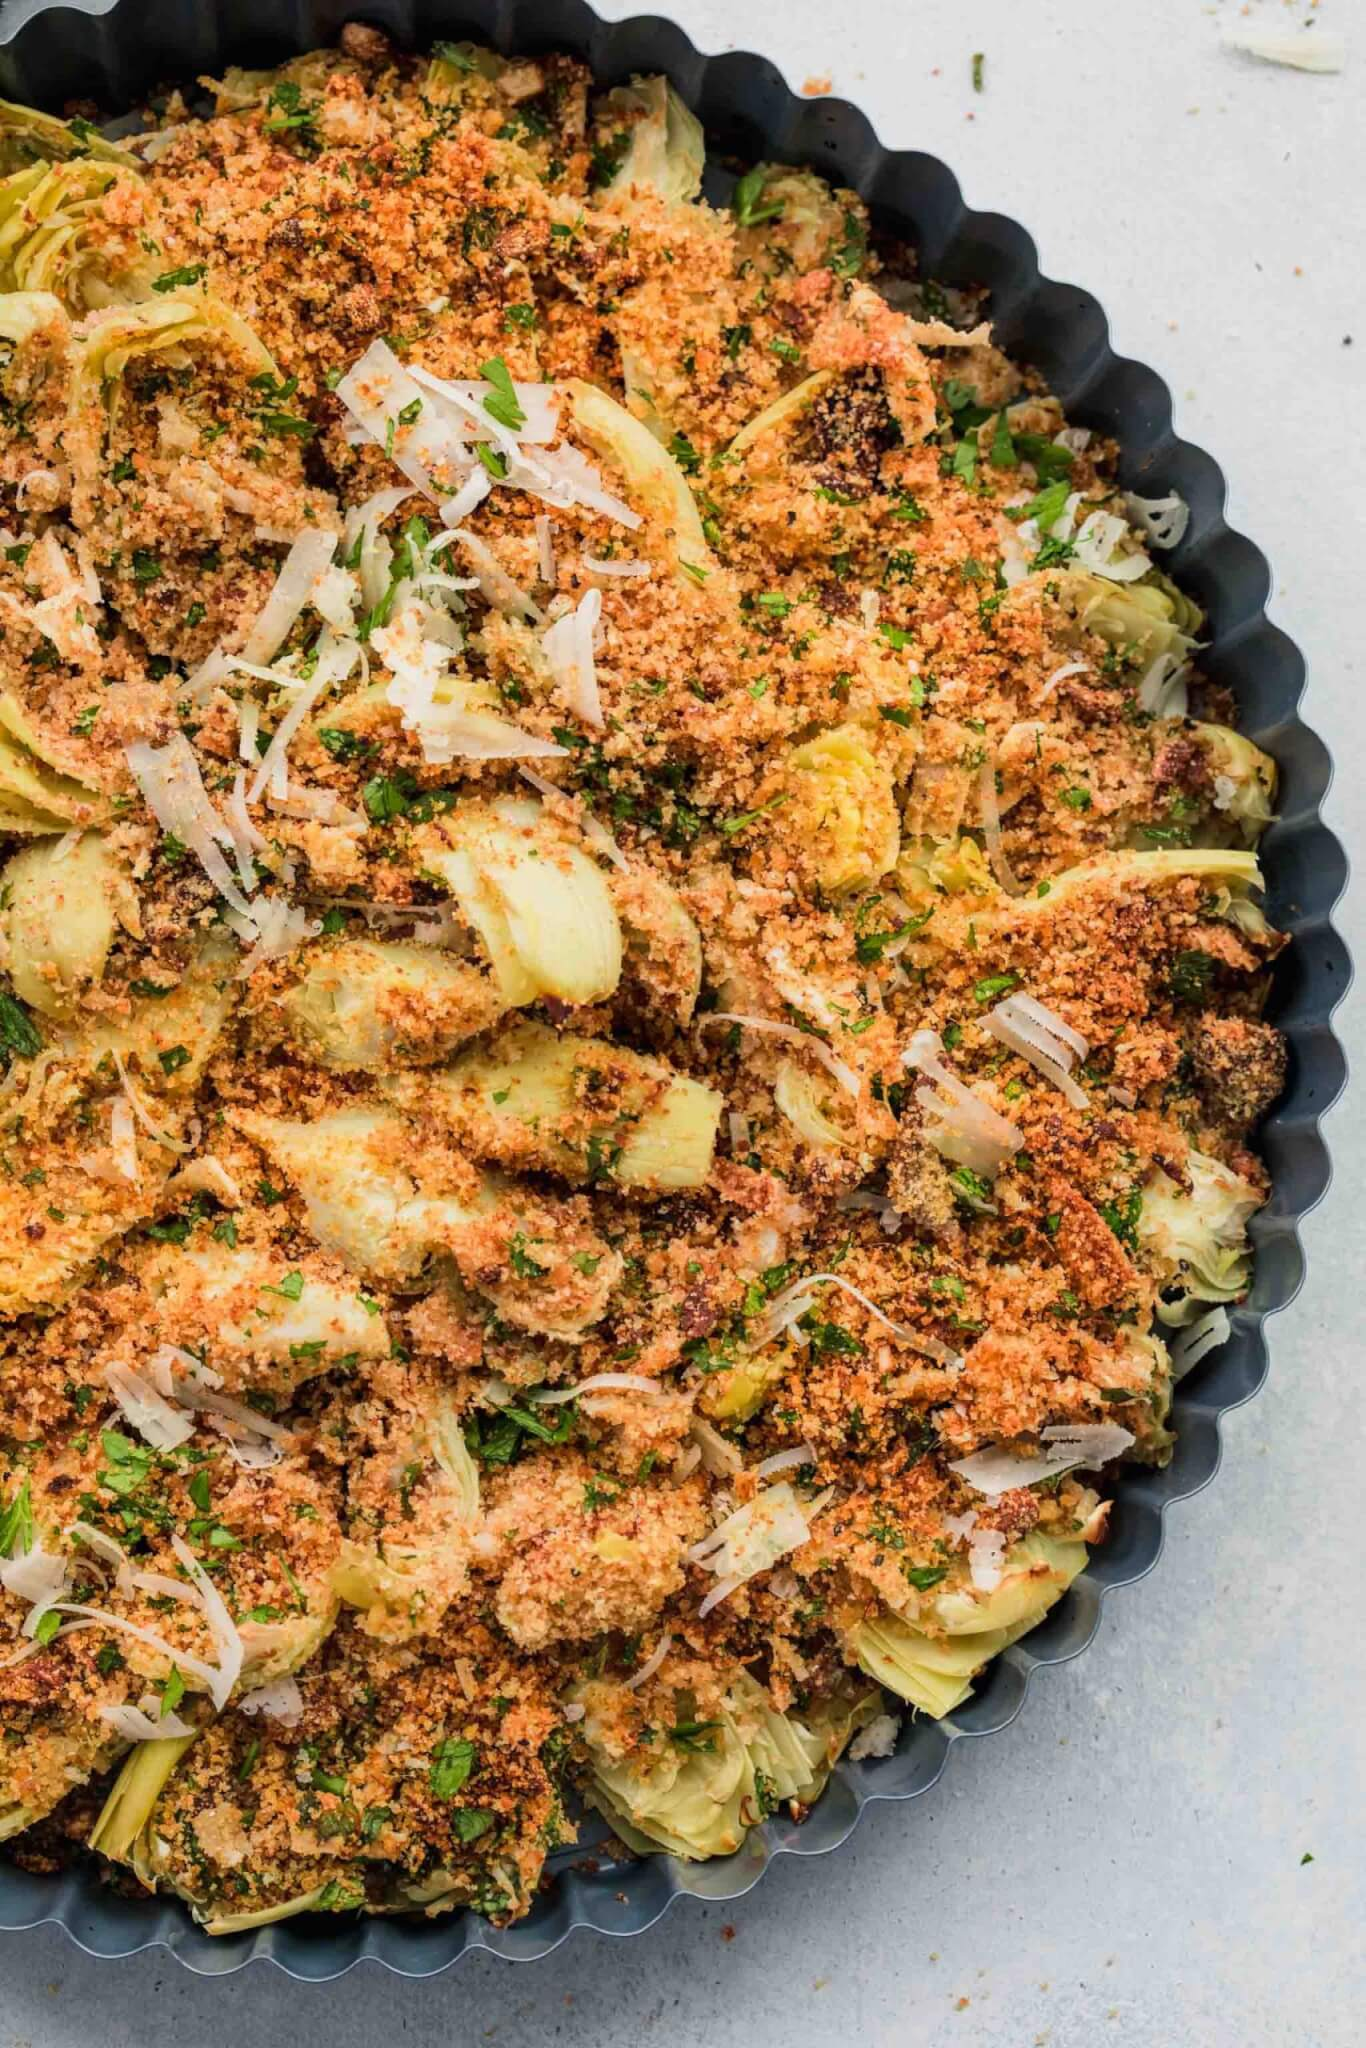 Baked artichoke hearts in baking dish after cooking.